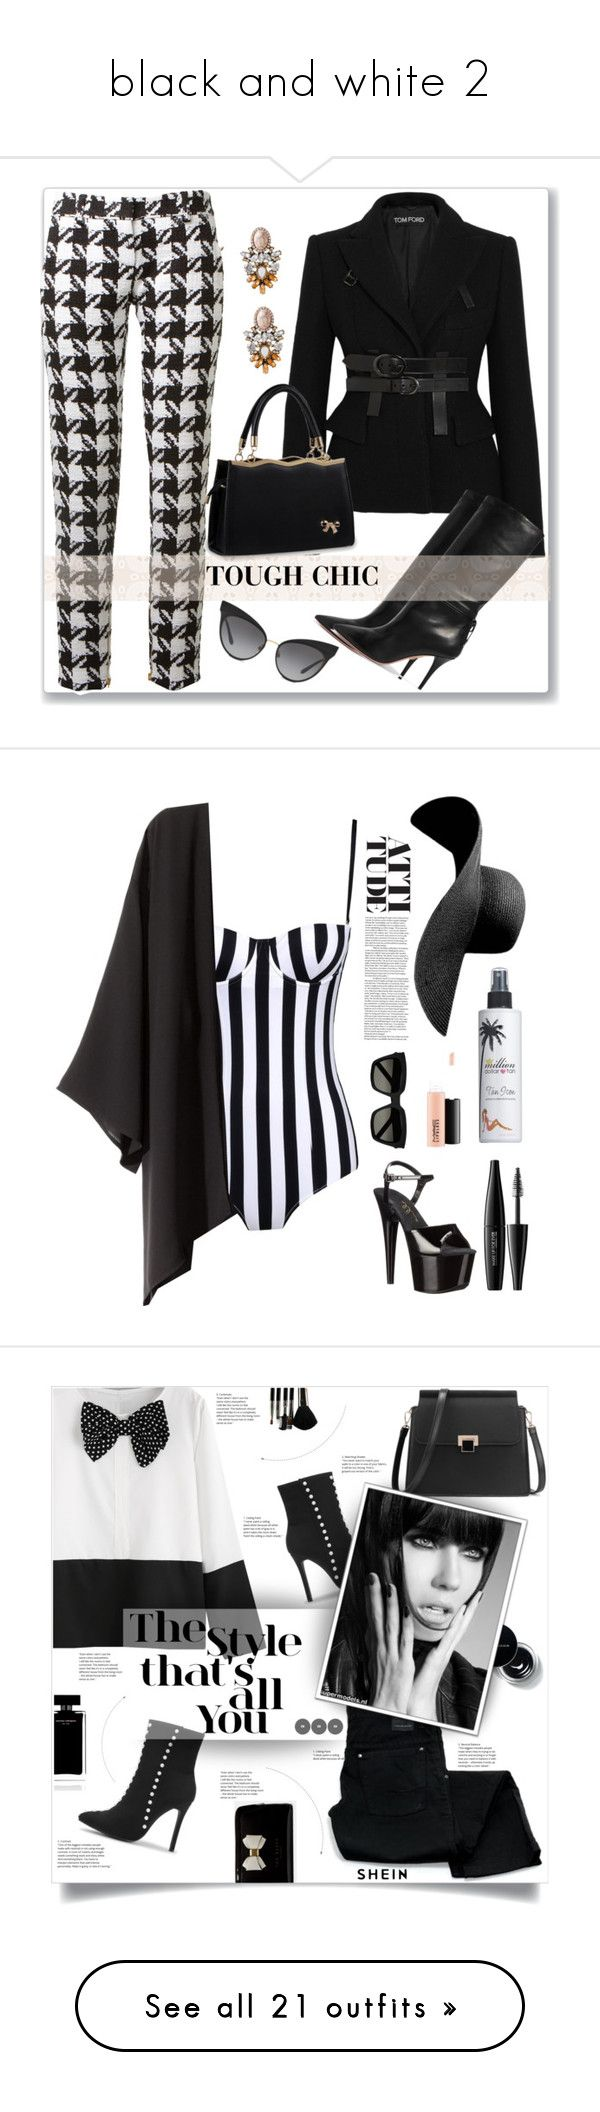 """""""black and white 2"""" by ericap61720 ❤ liked on Polyvore featuring Tom Ford, Aquazzura, Balmain, Dolce&Gabbana, Million Dollar Tan, MAKE UP FOR EVER, Ellie Shoes, Yves Saint Laurent, MAC Cosmetics and H&M"""